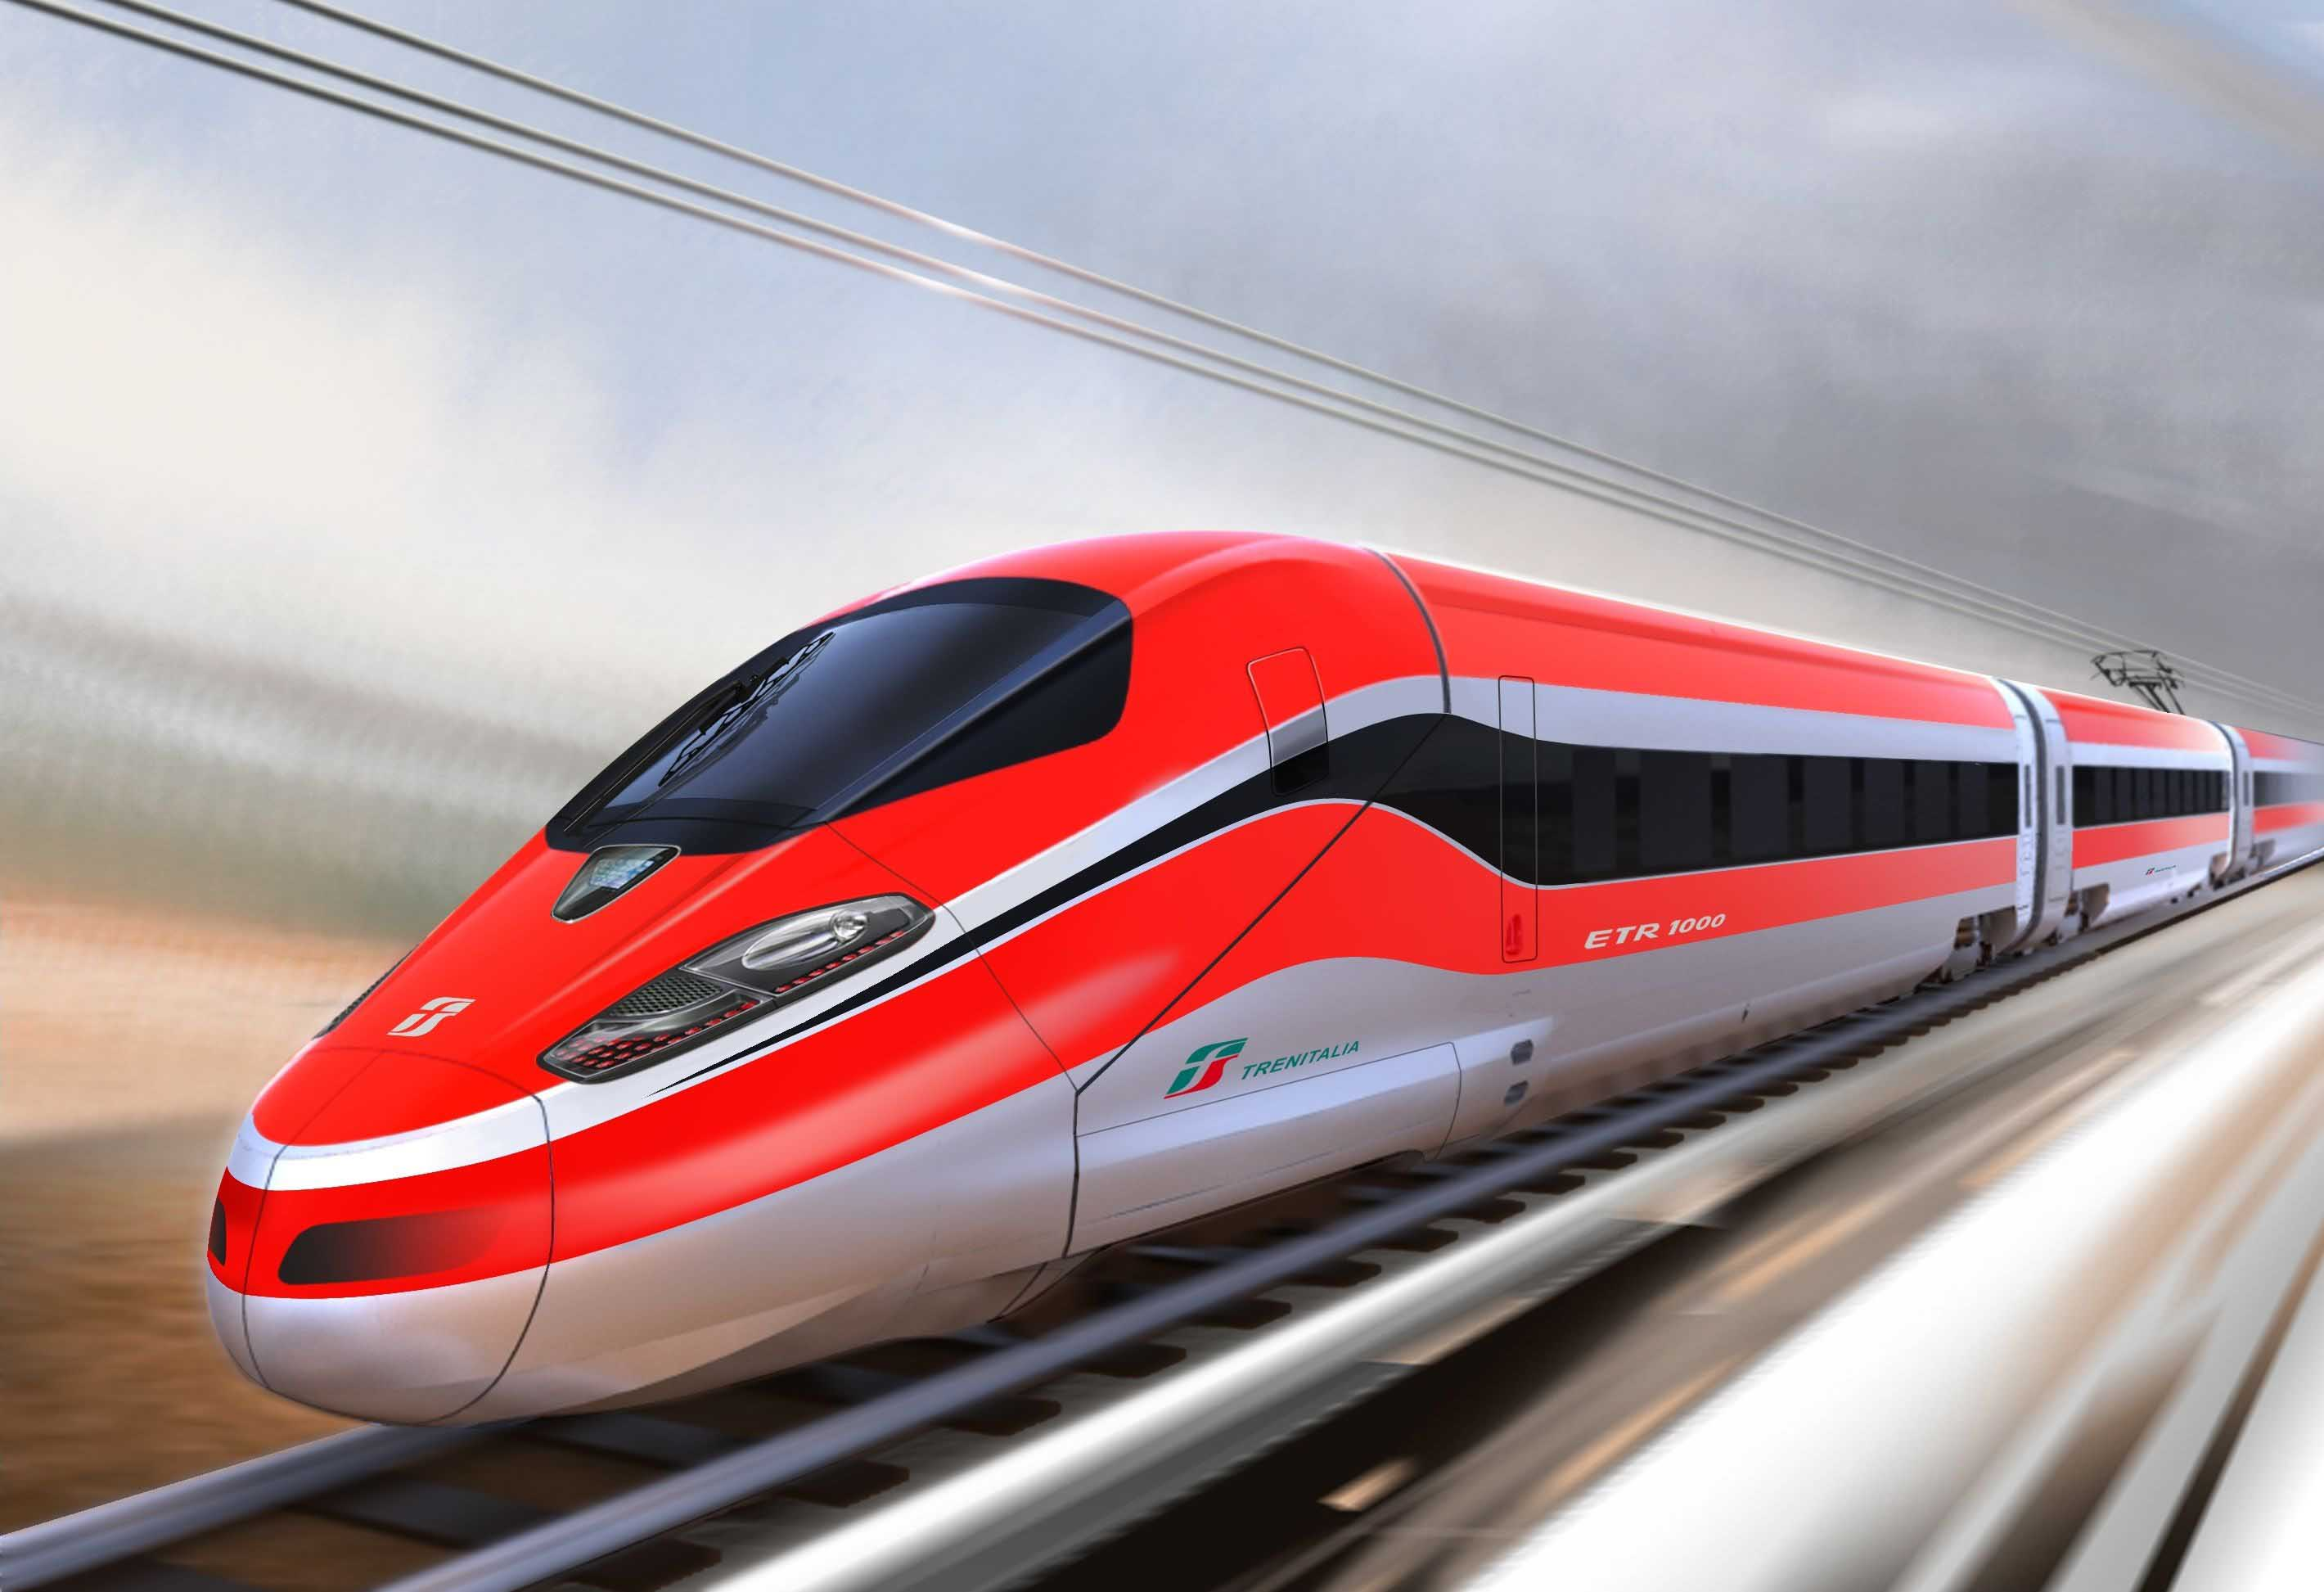 Image result for ETR 500 Frecciarossa Train